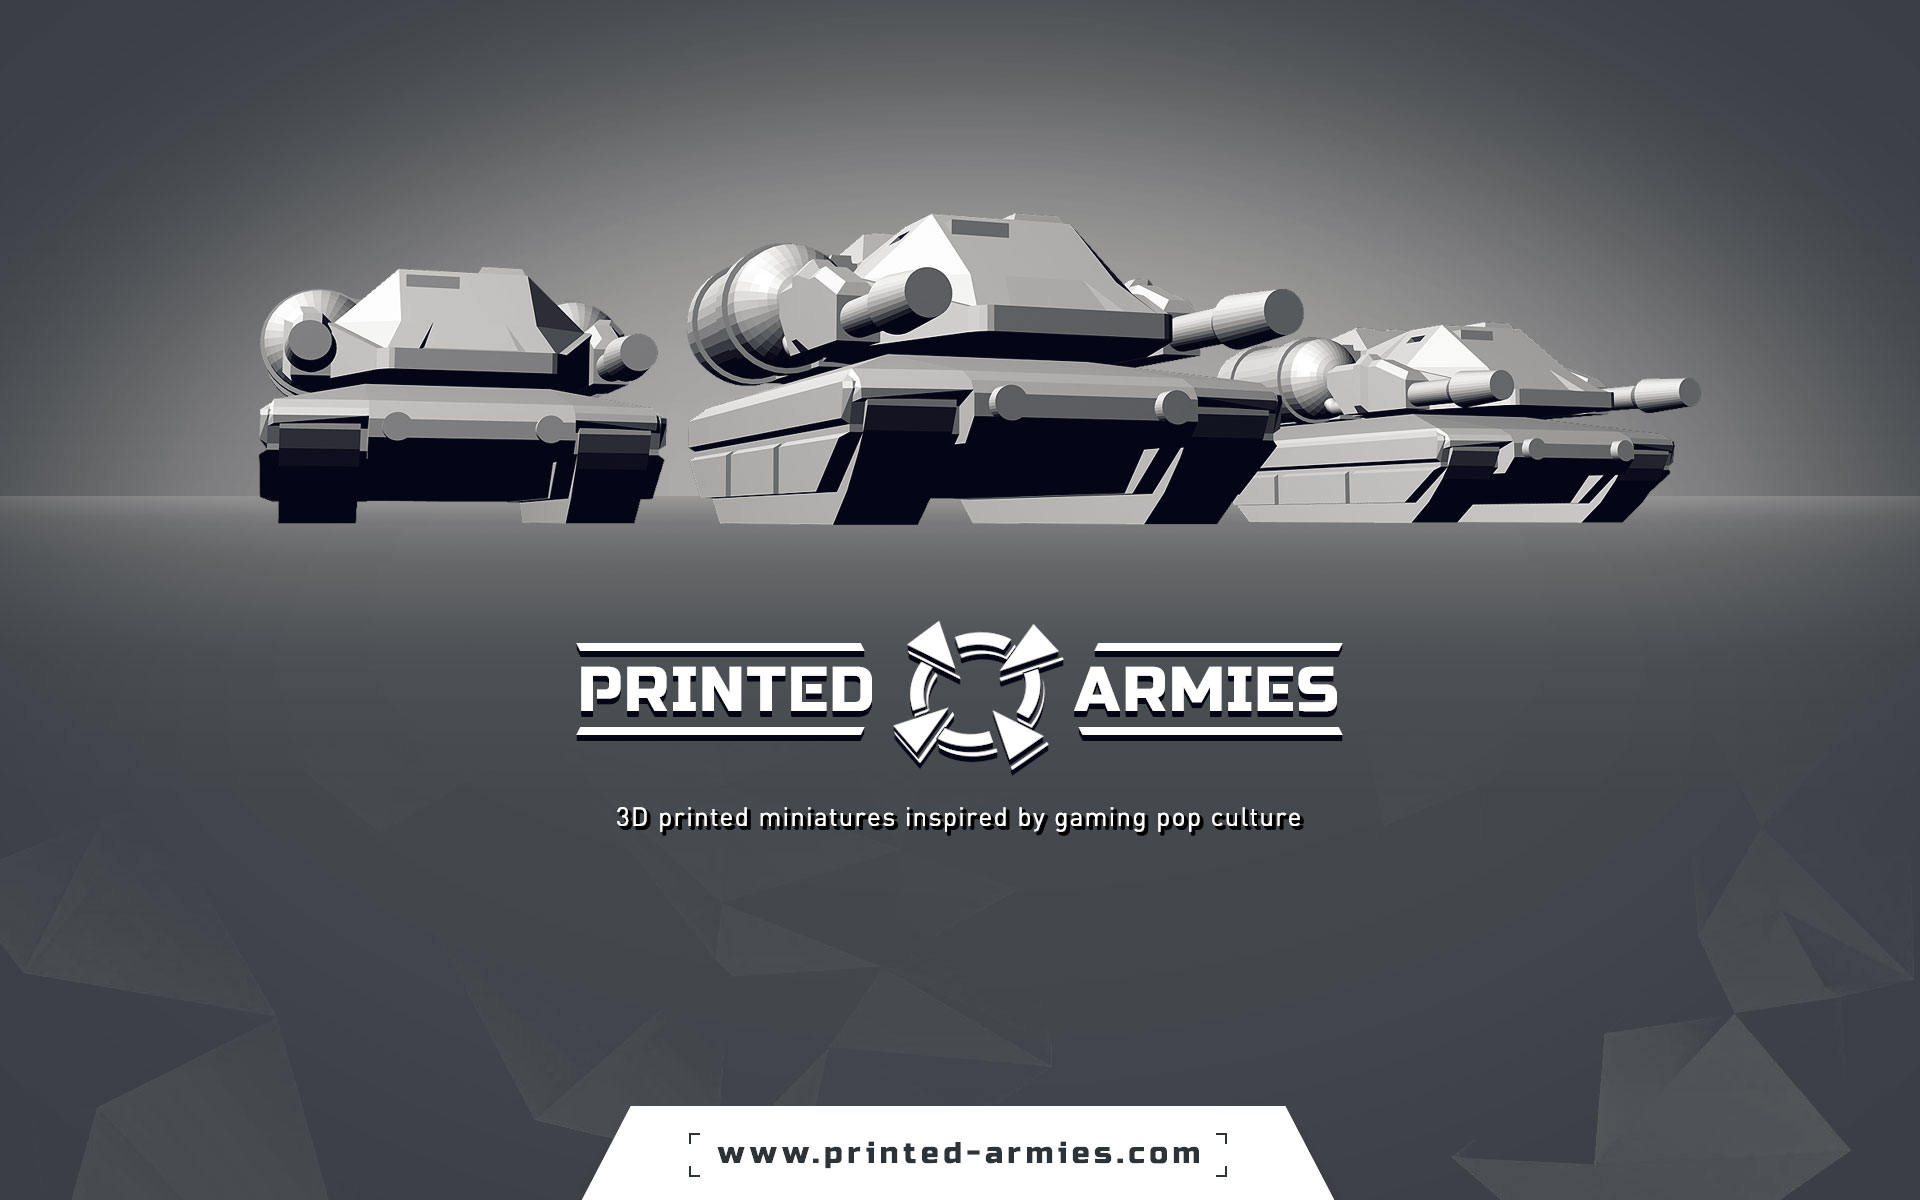 printed-armies-wallpaper05